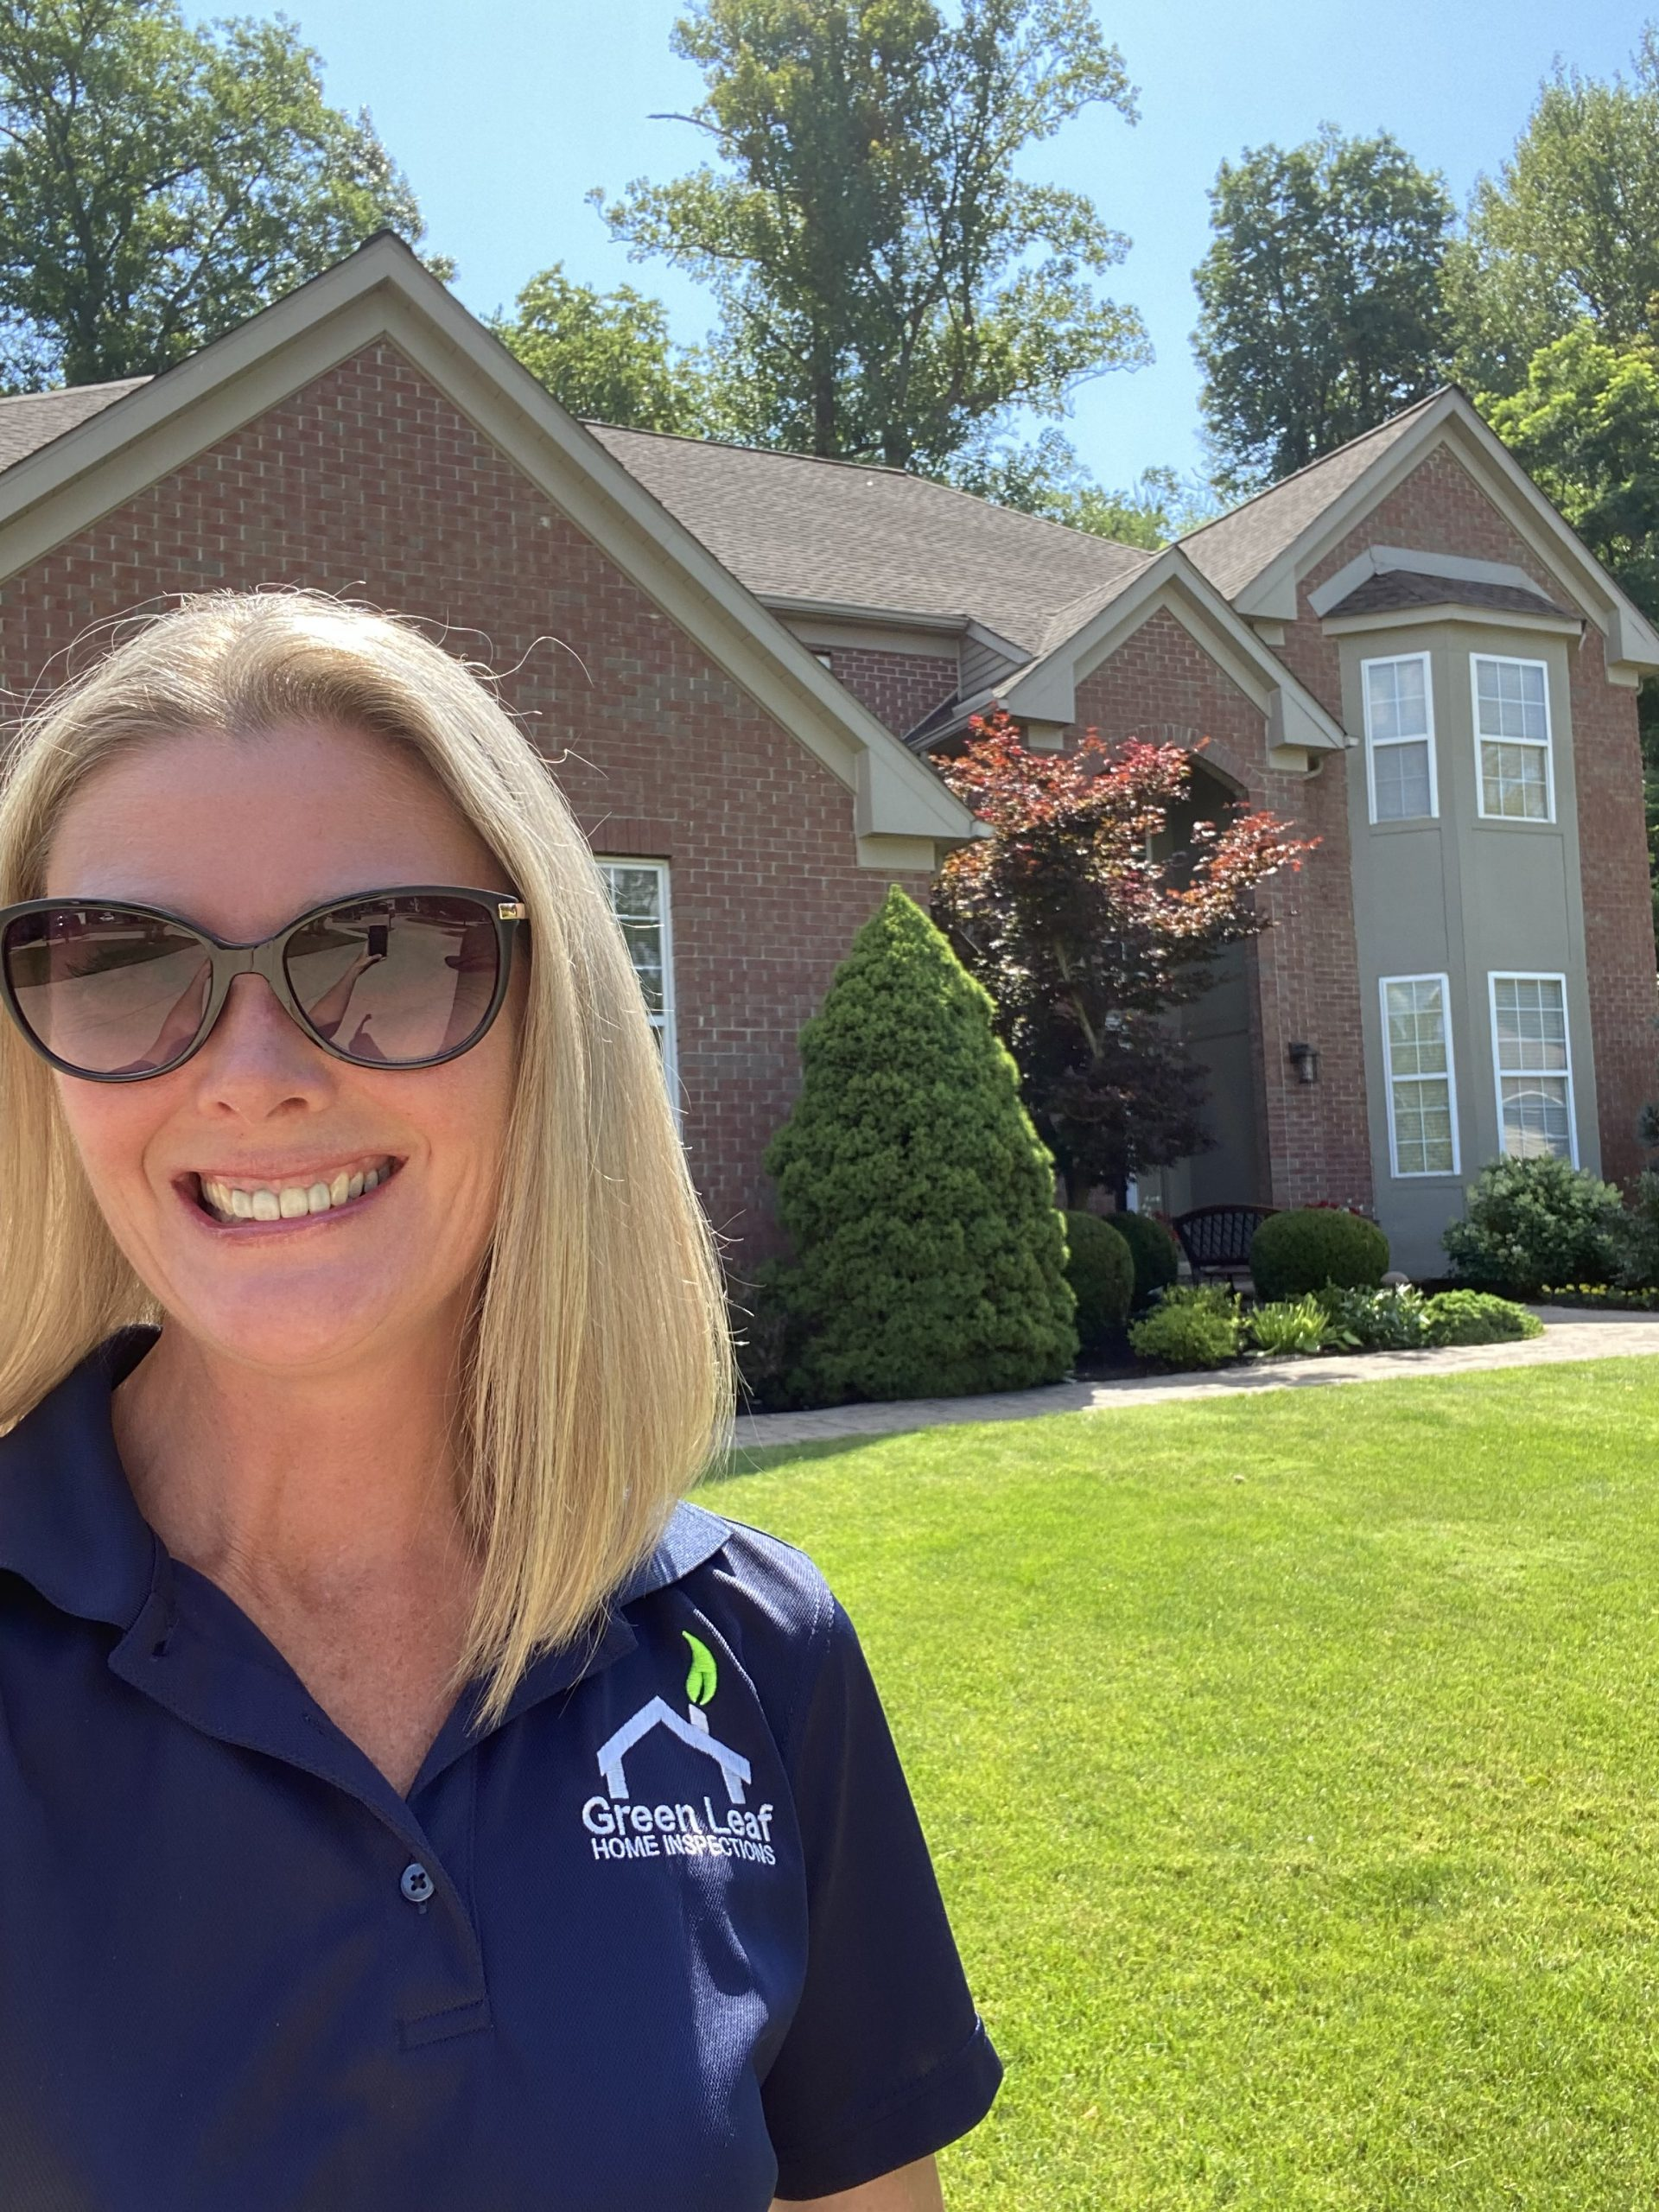 Another fantastic day out for Green Leaf Home Inspections on Brokers Tour in Northeast Ohio. So many beautiful homes on the market!